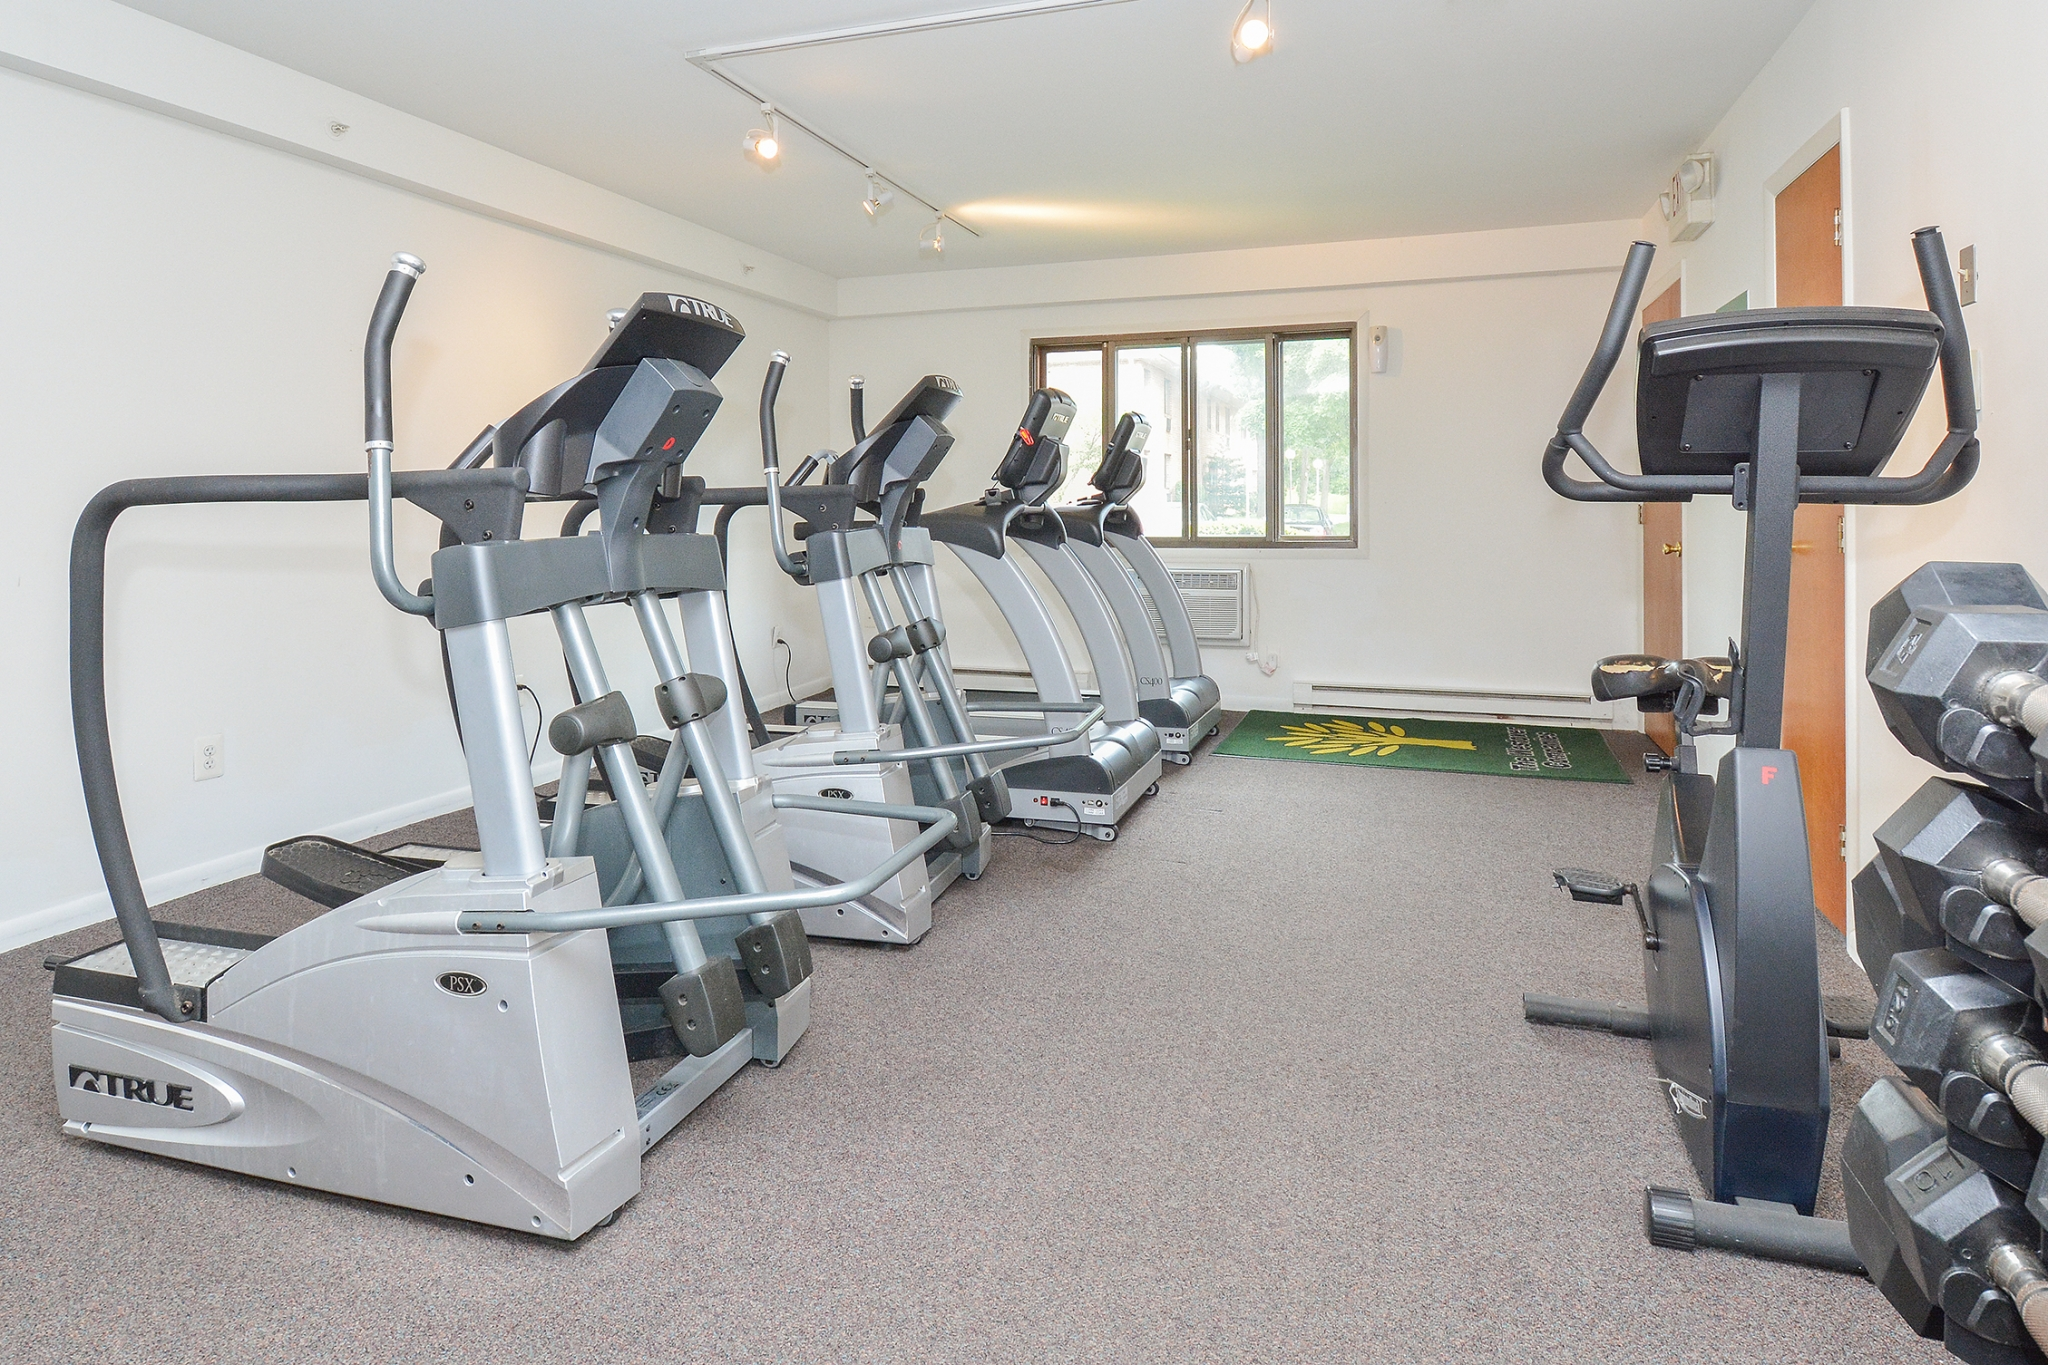 Whiteland West Fitness Center | Apartments near Exton PA